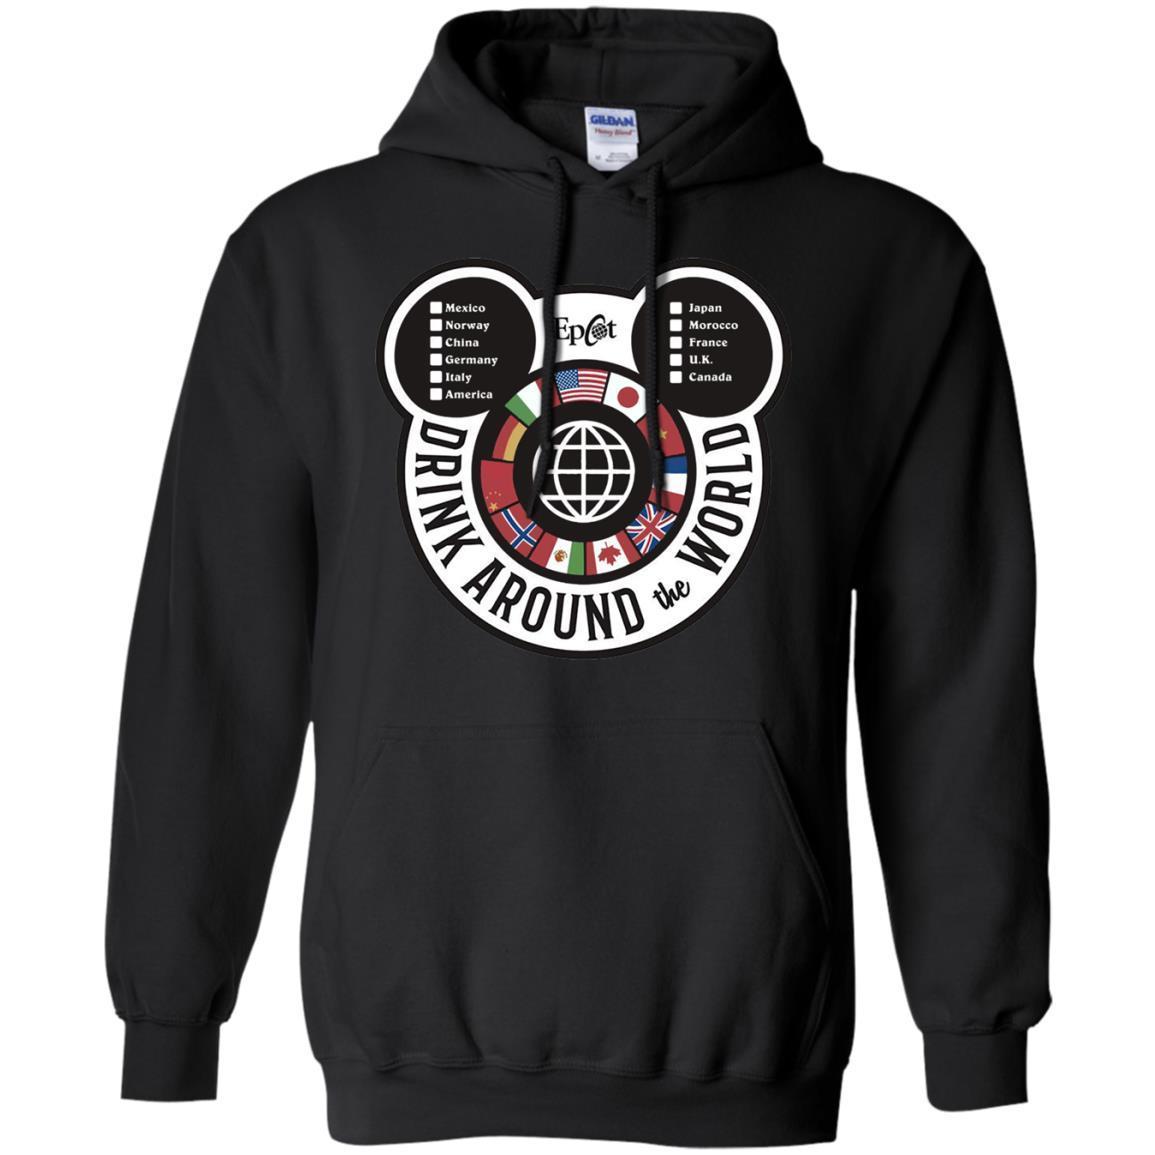 Drink Around the World - EPCOT Checklist - Pullover Hoodie Black / 5XL